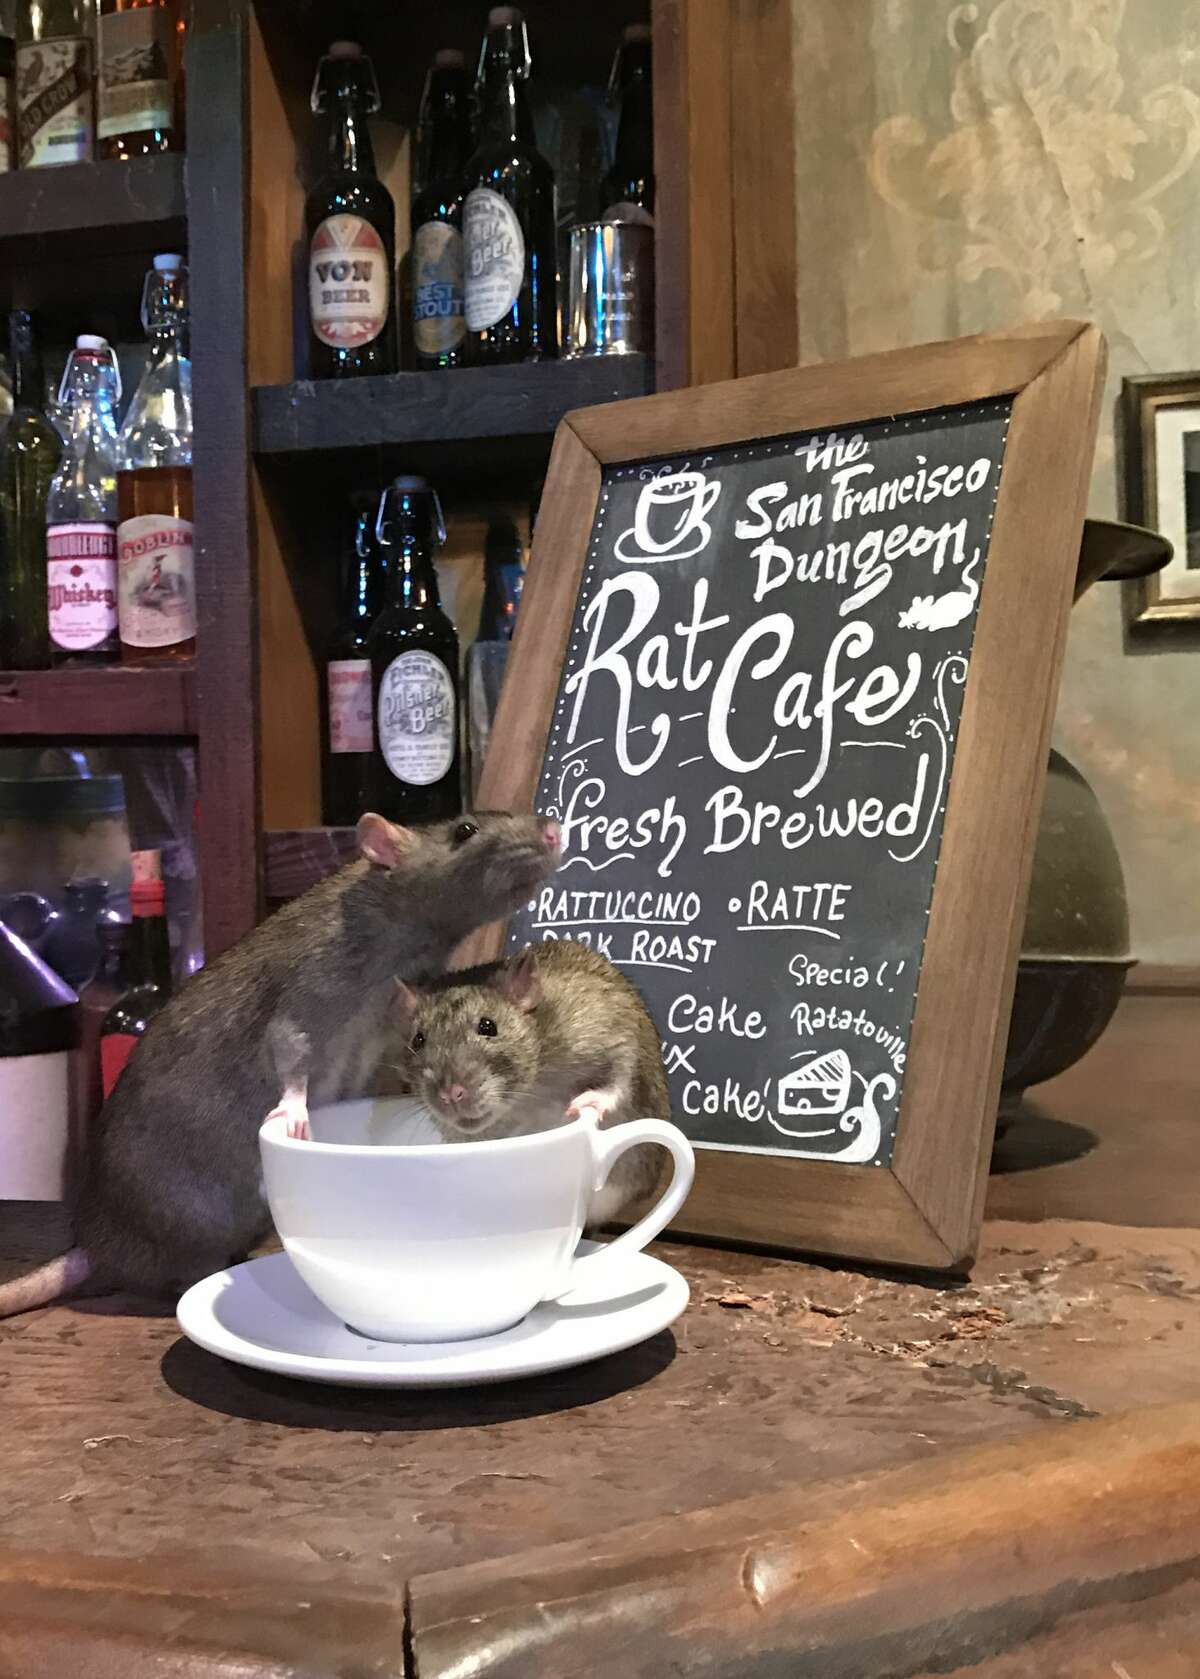 The San Francisco Dungeon is hosting a pop-up cafe featuring food, coffee and... domesticated rats.